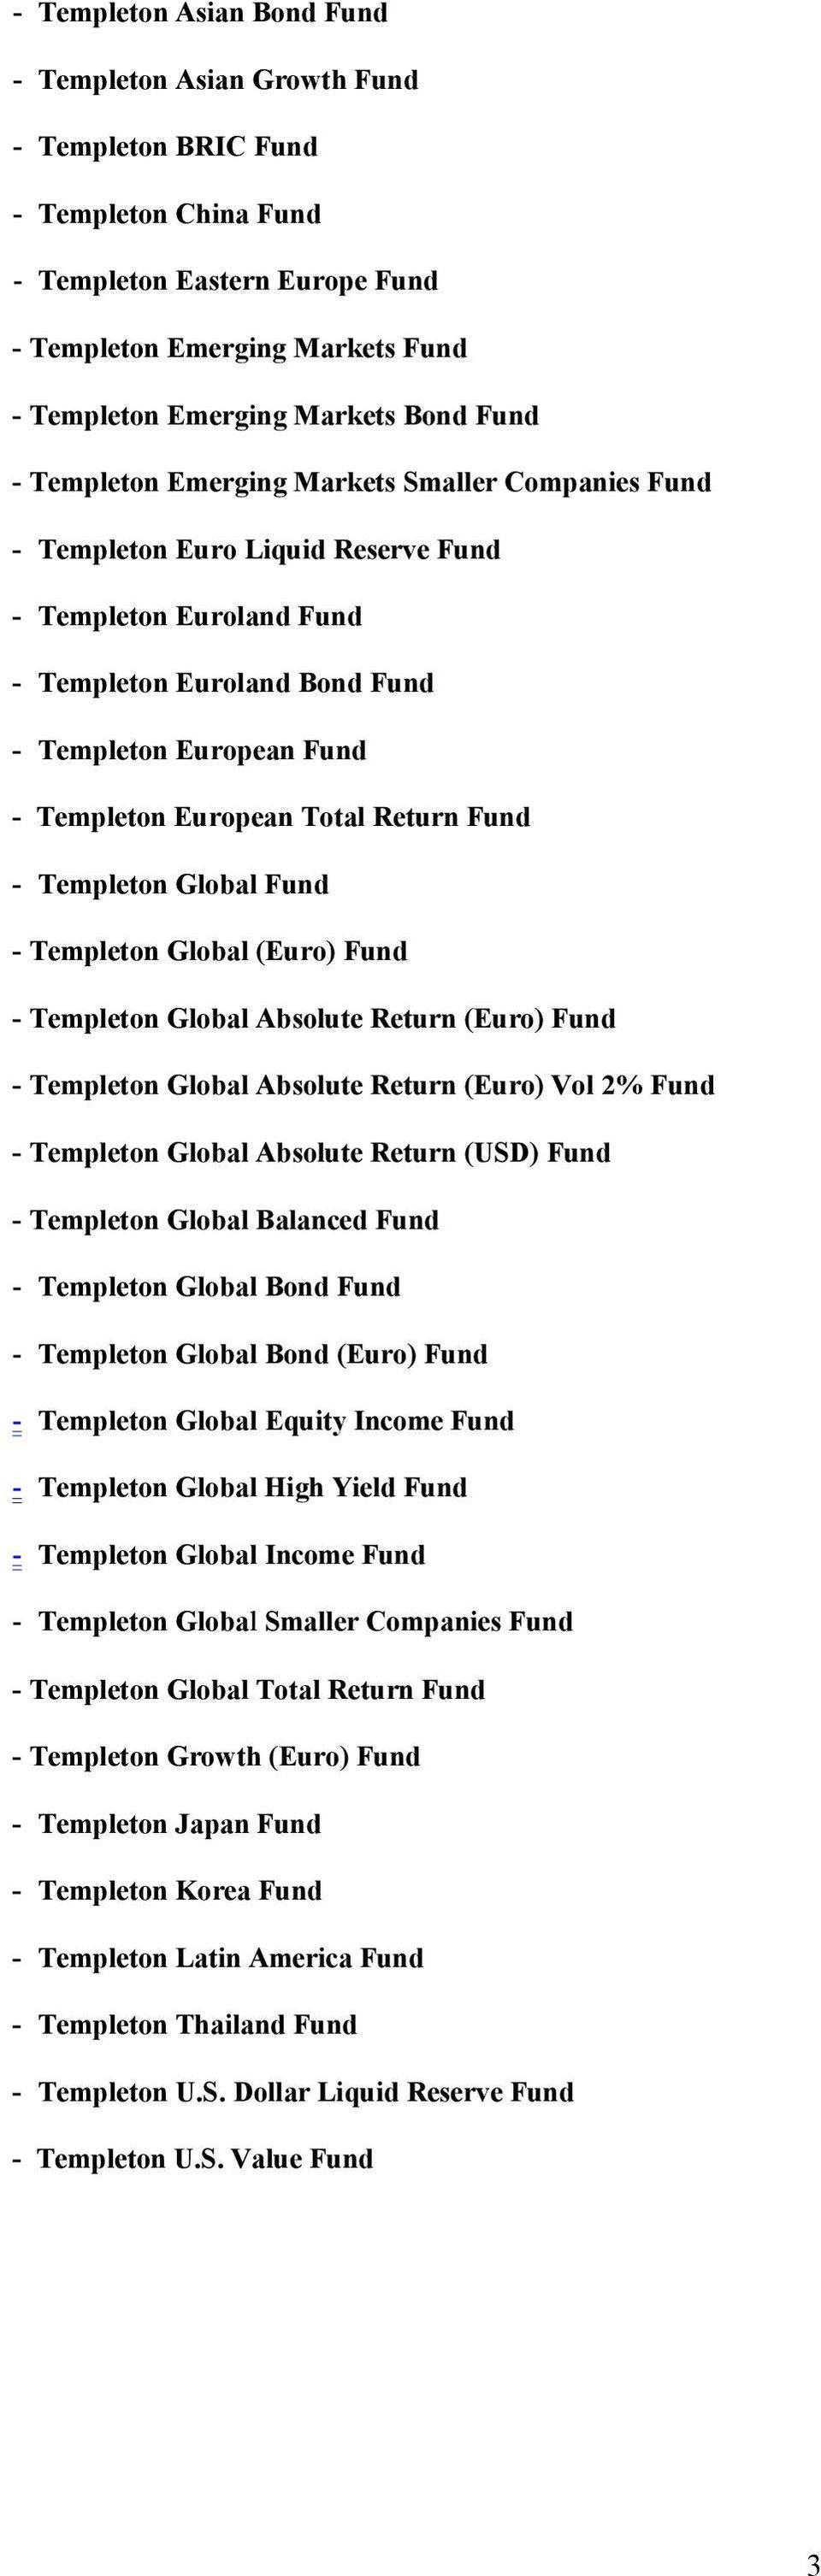 European Total Return Fund - Templeton Global Fund - Templeton Global (Euro) Fund - Templeton Global Absolute Return (Euro) Fund - Templeton Global Absolute Return (Euro) Vol 2% Fund - Templeton